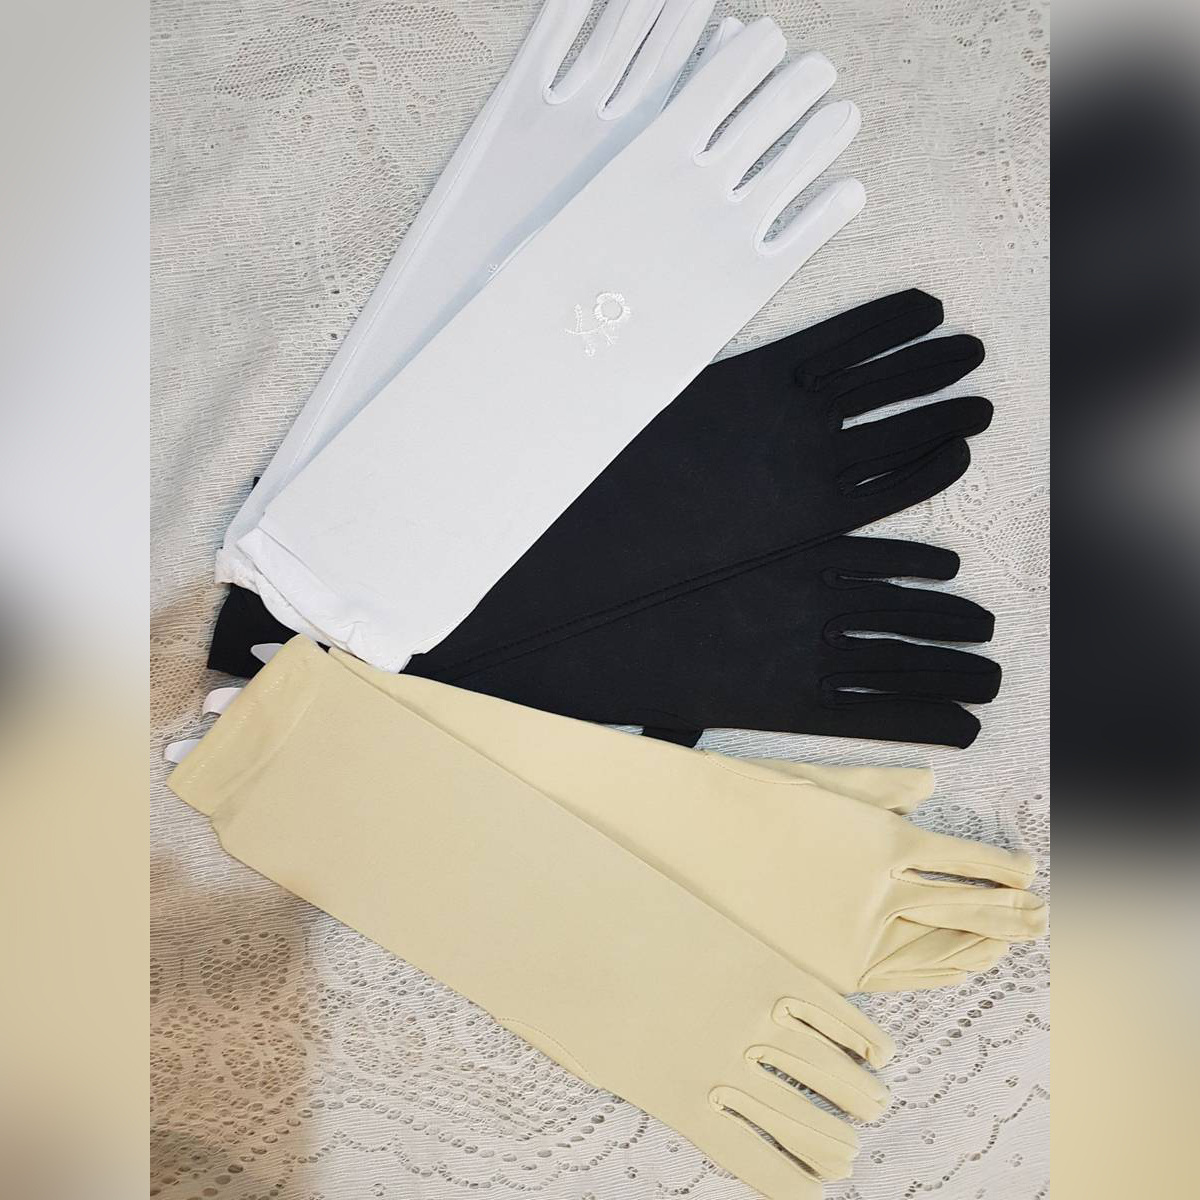 Aura De Awra pack of two pair of hand gloves for girls women ladies muslim wear Hijab to protect from sunlight dust